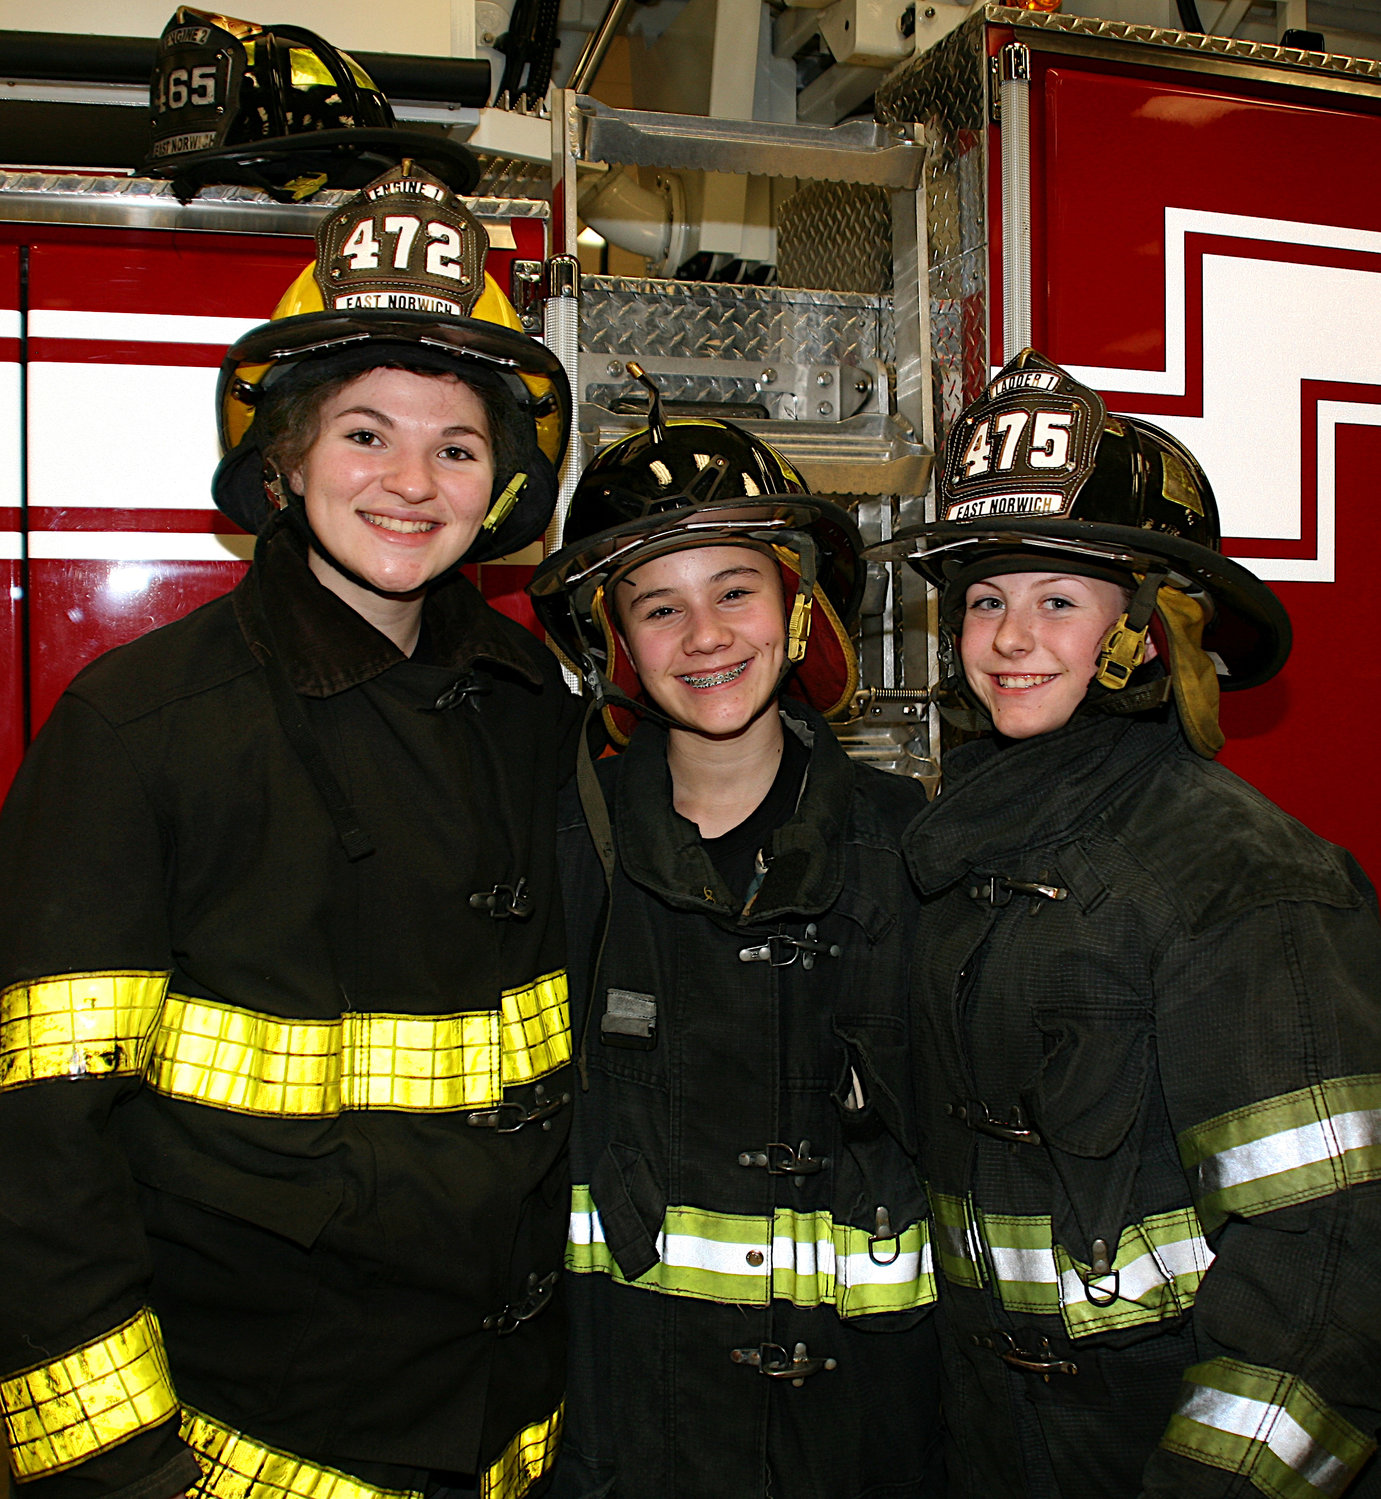 East Norwich Fire Department Juniors Mary Grace Syrett, far left, Arianna Wulffen and Kayla Cronin at the training.